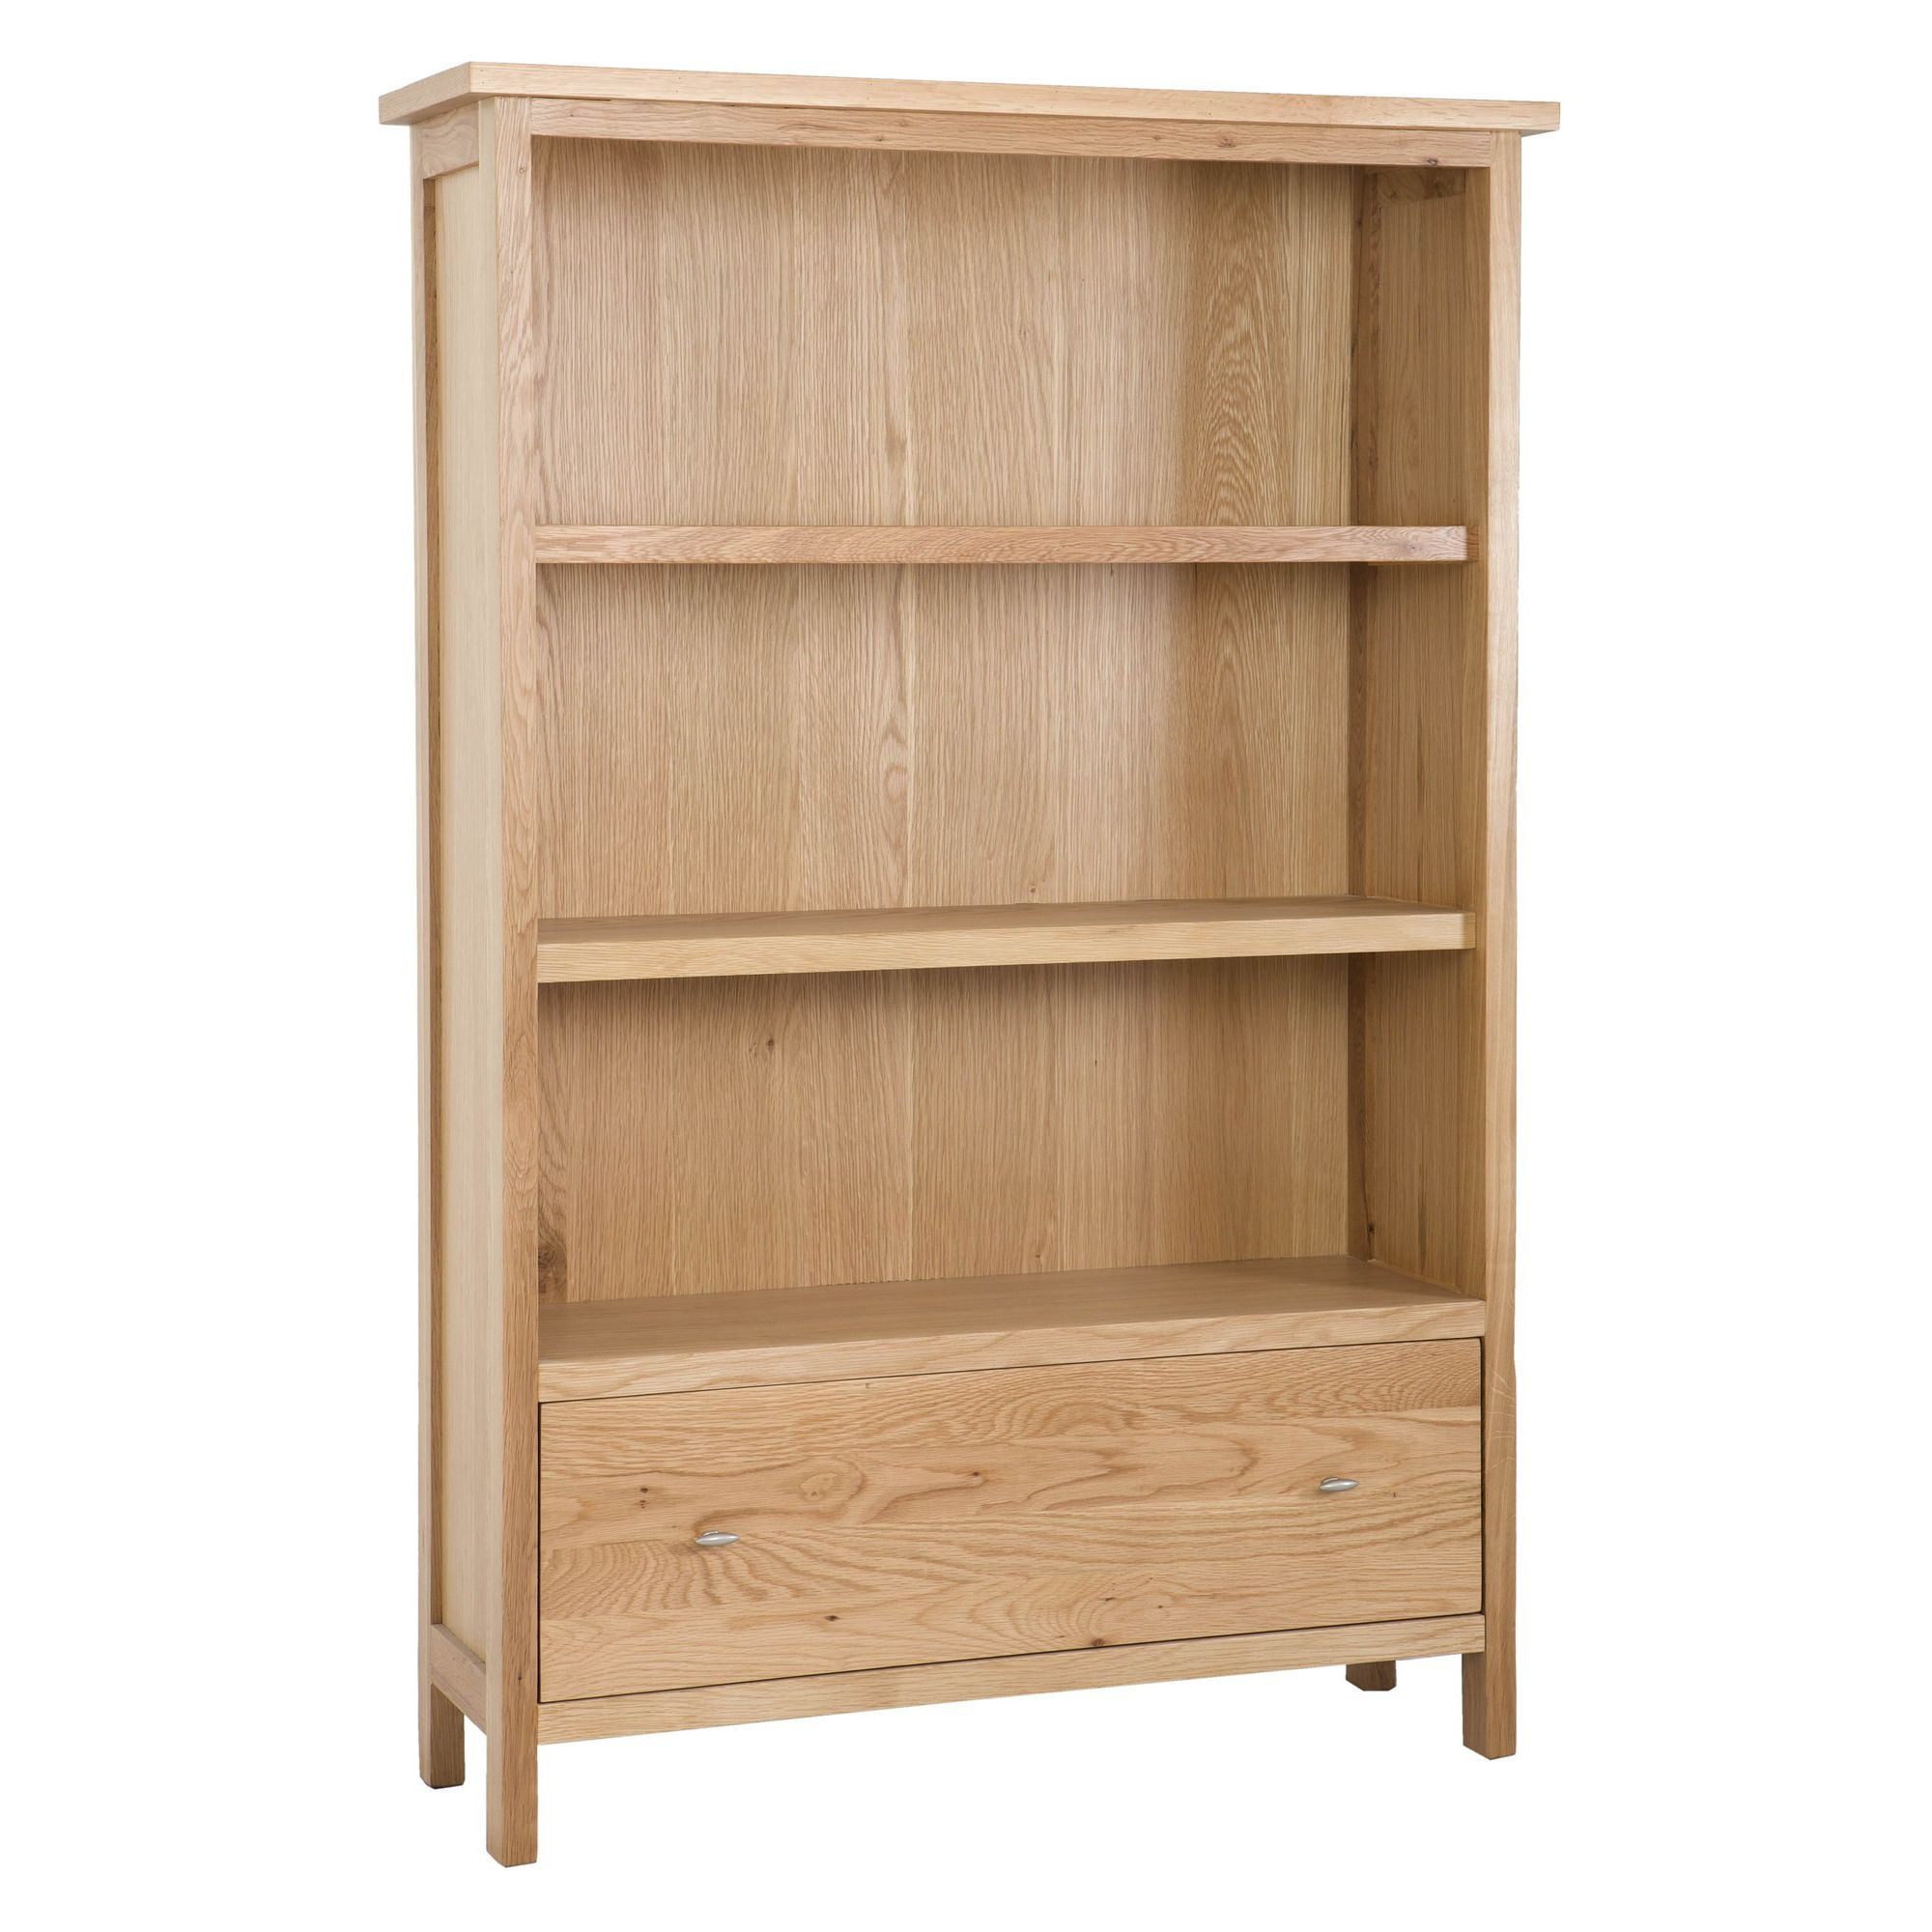 Oakinsen Balmain Lower Bookcase at Tesco Direct